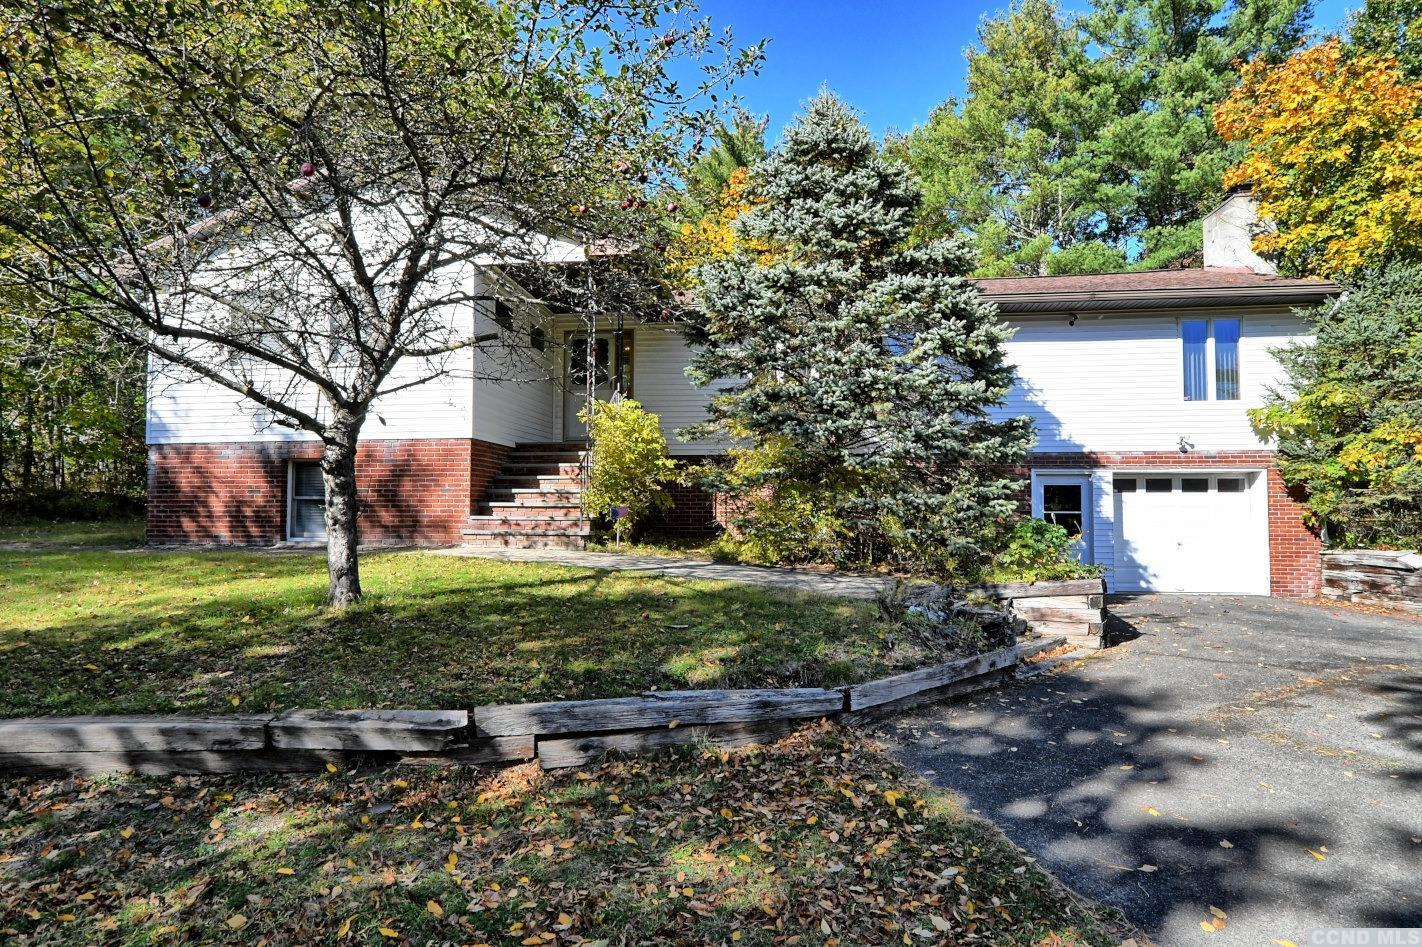 A Fantastic Home & Property with 3 Bedrooms, 2 Baths, a Former 8 Bedroom Boarding House, and a Pond on 8.43 Acres! The home features 3 bedrooms & 2 baths - including a master bedroom & bath suite, an open dining area & living room with a brick fireplace, an eat-in kitchen, a full basement that could be finished for additional living space, an office, or a mother/daughter apartment - which has a separate entrance, a 1 car garage, & a paved driveway. The charming boarding house features 8 bedrooms, 2 bathrooms, and vintage furniture & appointments from that era. It could be used as a guest house, an artist's studio, a barn, an office, or a business or retail center. The home, the former boarding house, & the pond are nestled into the 8.43 acres among the Chestnut trees with privacy. Just 15 minutes to Windham Ski Mountain & 25 minutes to Hunter Ski Mountain. It's minutes to Golf Resorts & Zoom Flume Water Park. It's a Beautiful Home & Property!